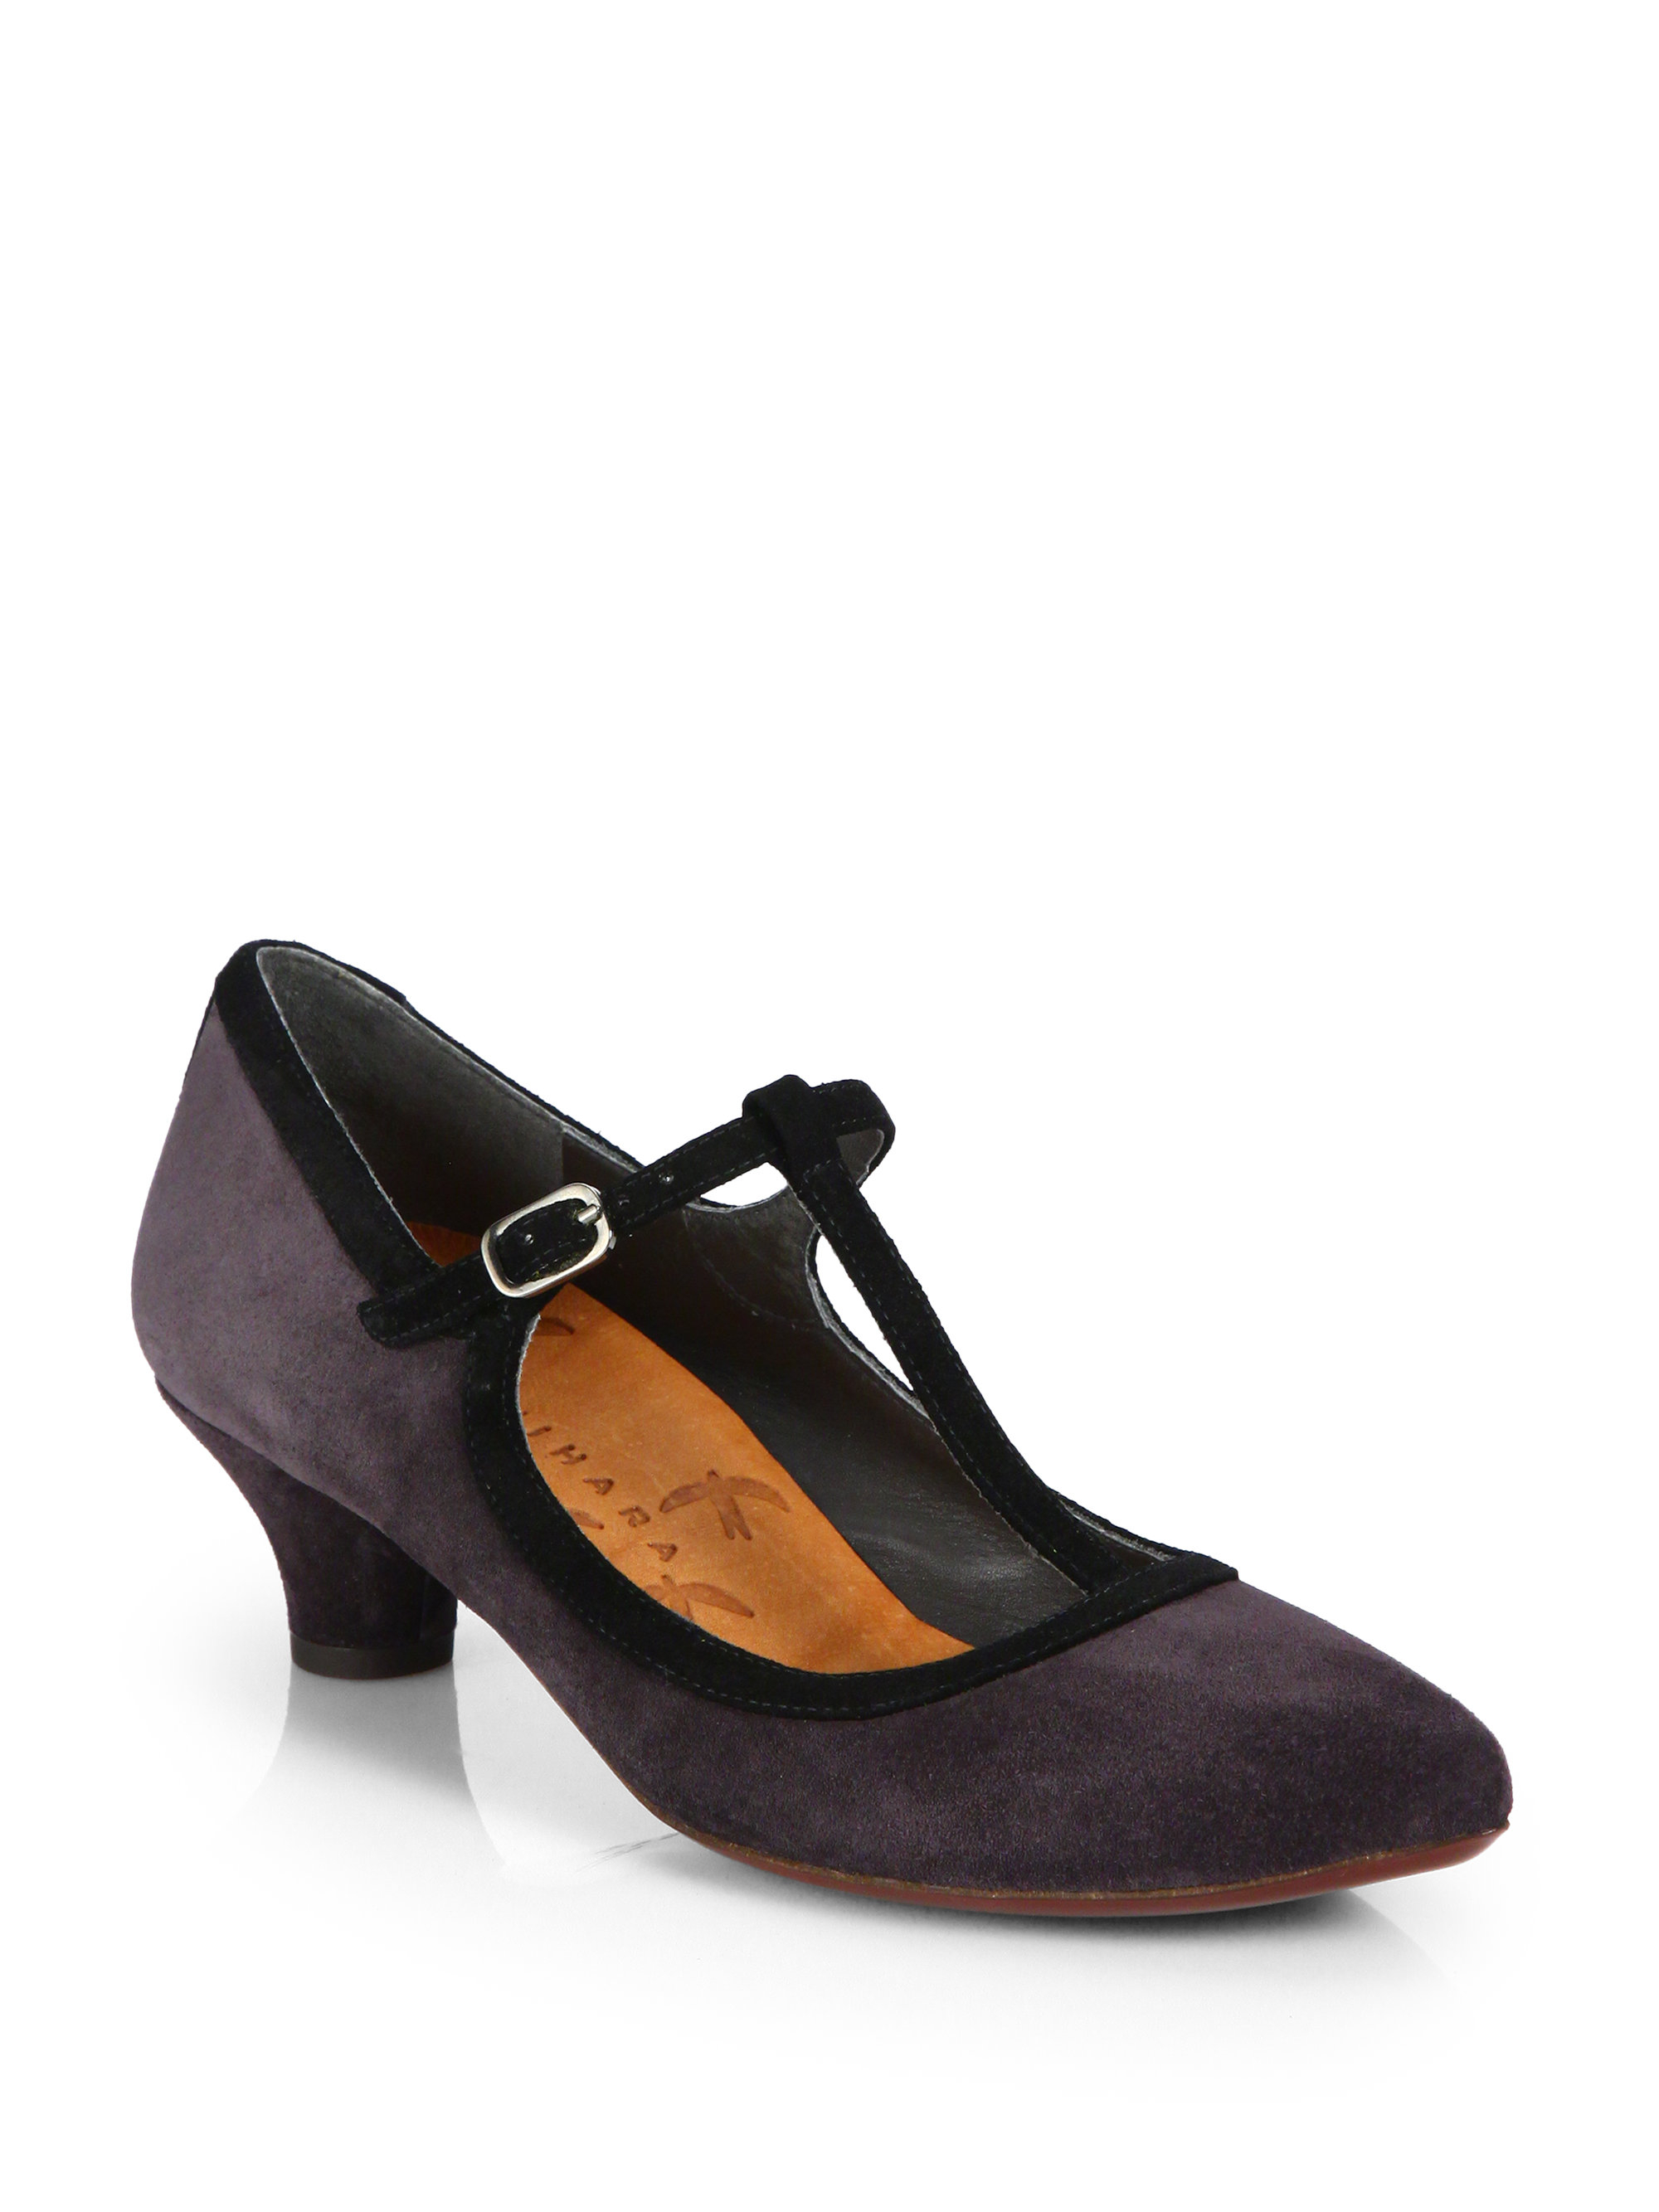 Chie mihara Fix Suede T-Strap Kitten Heel in Brown  Lyst